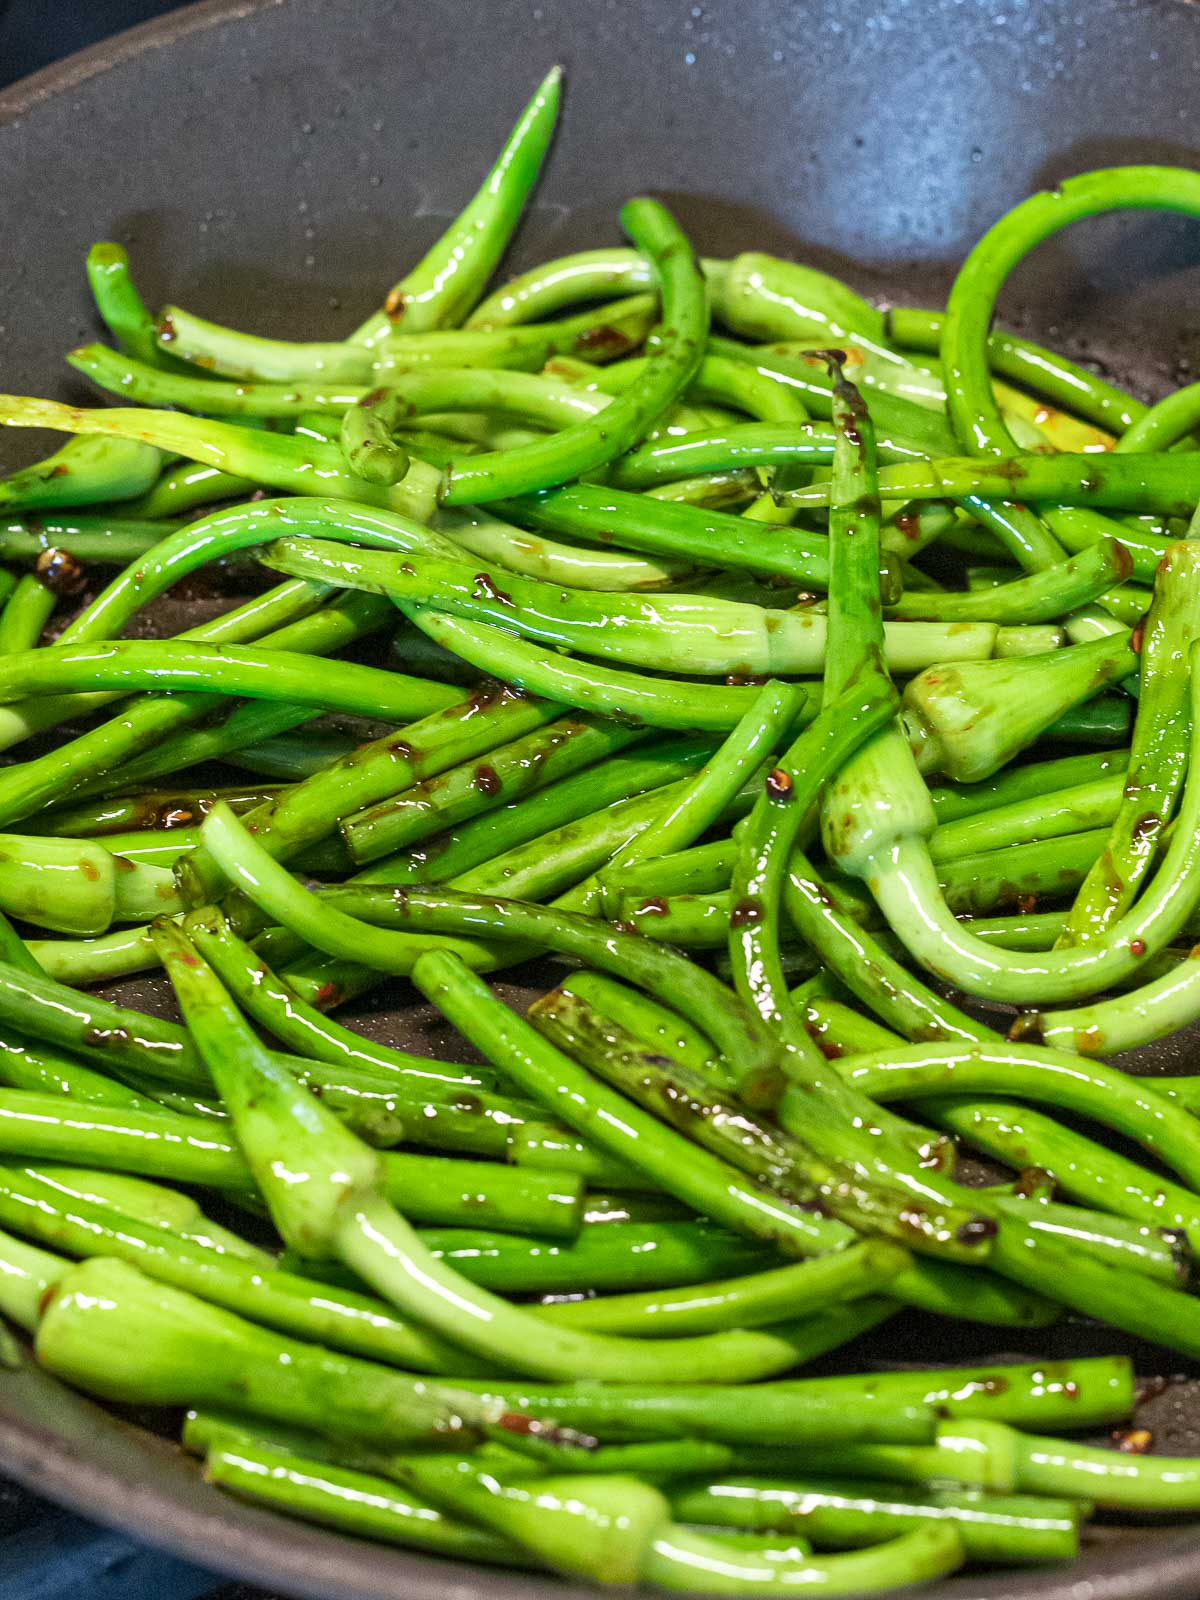 sauteed garlic scapes in a dark pan